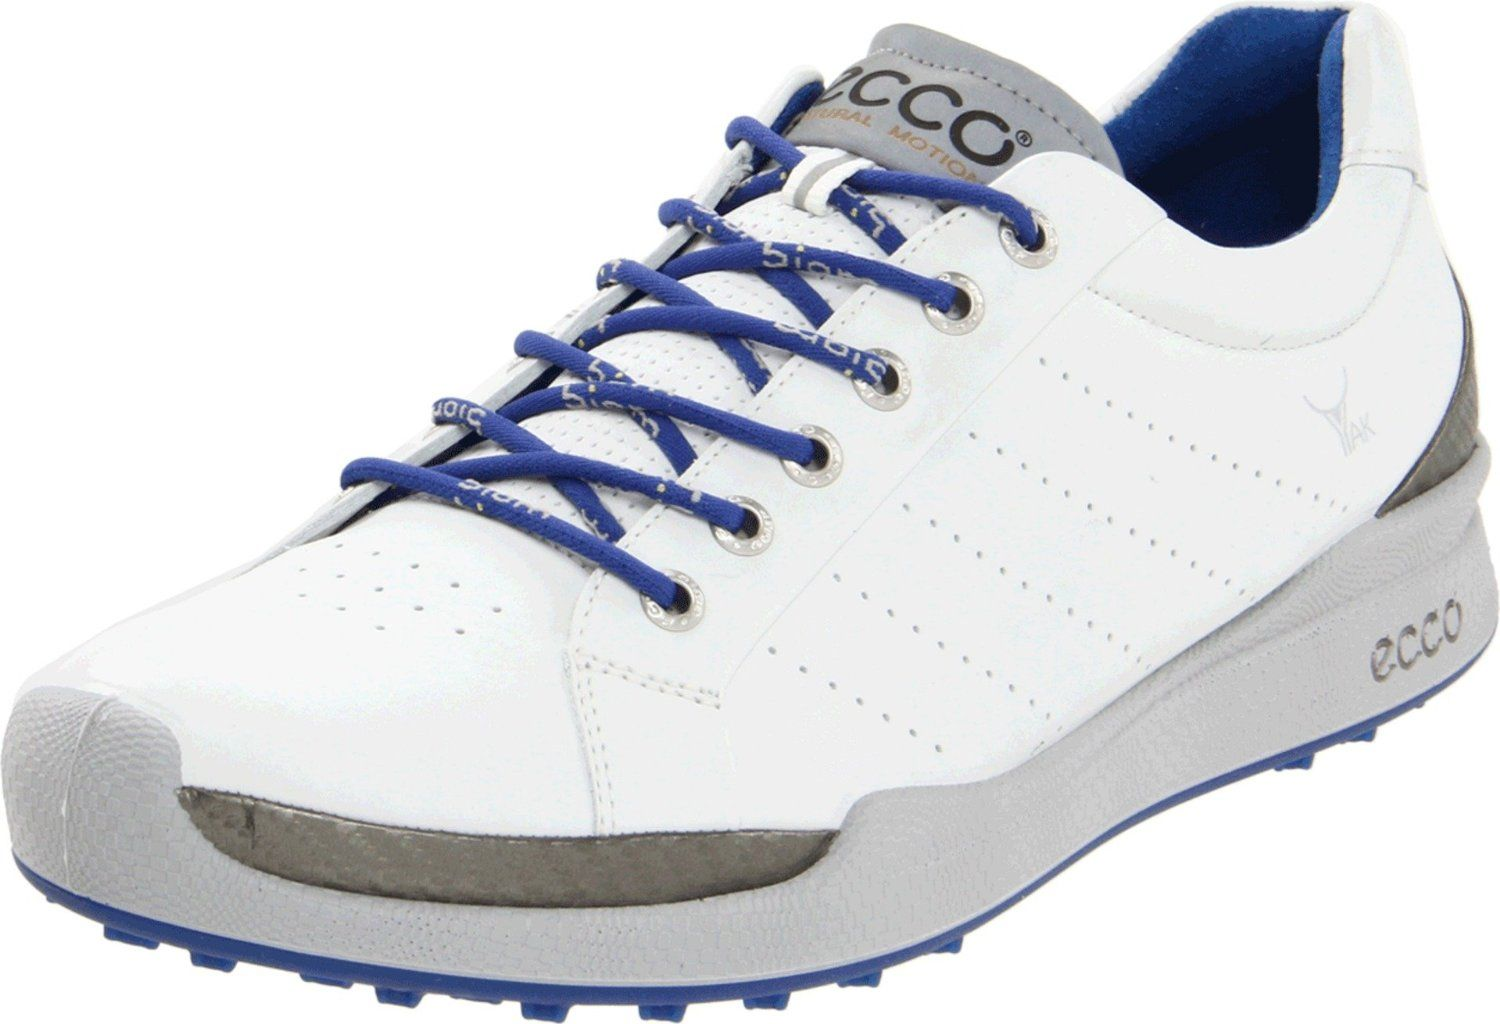 15++ Best cleatless golf shoes information